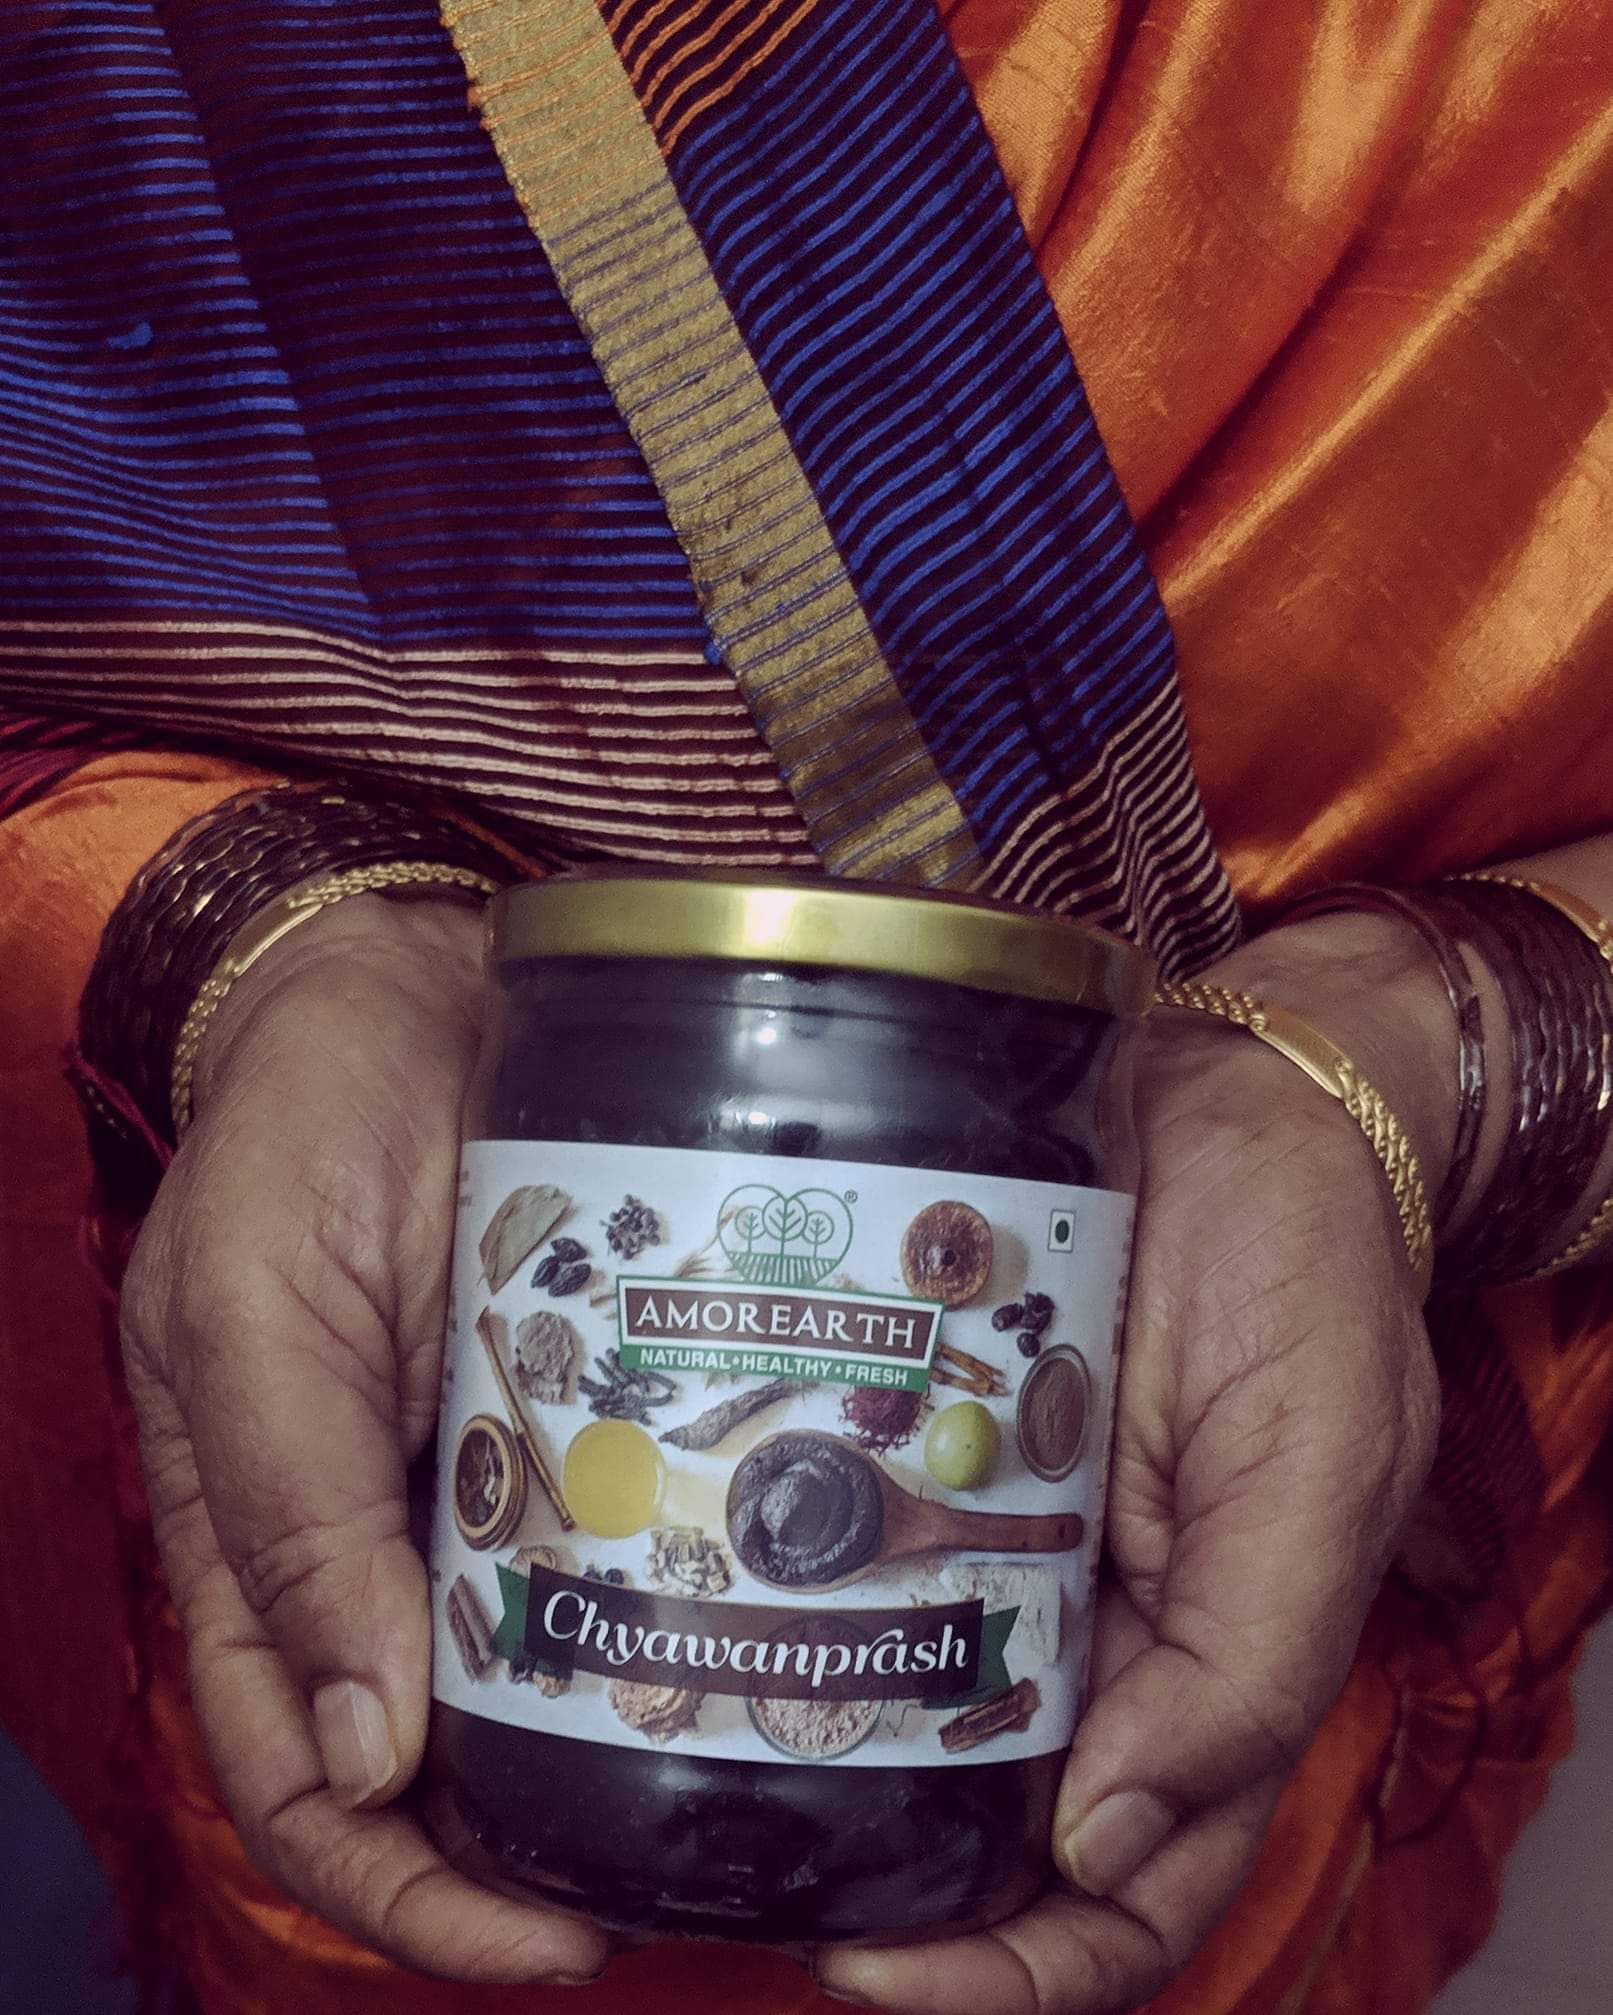 Chyawanprash - An Ancient Indian Anti-ageing Elixir For Preventive, Promotive & Curative Health Benefits